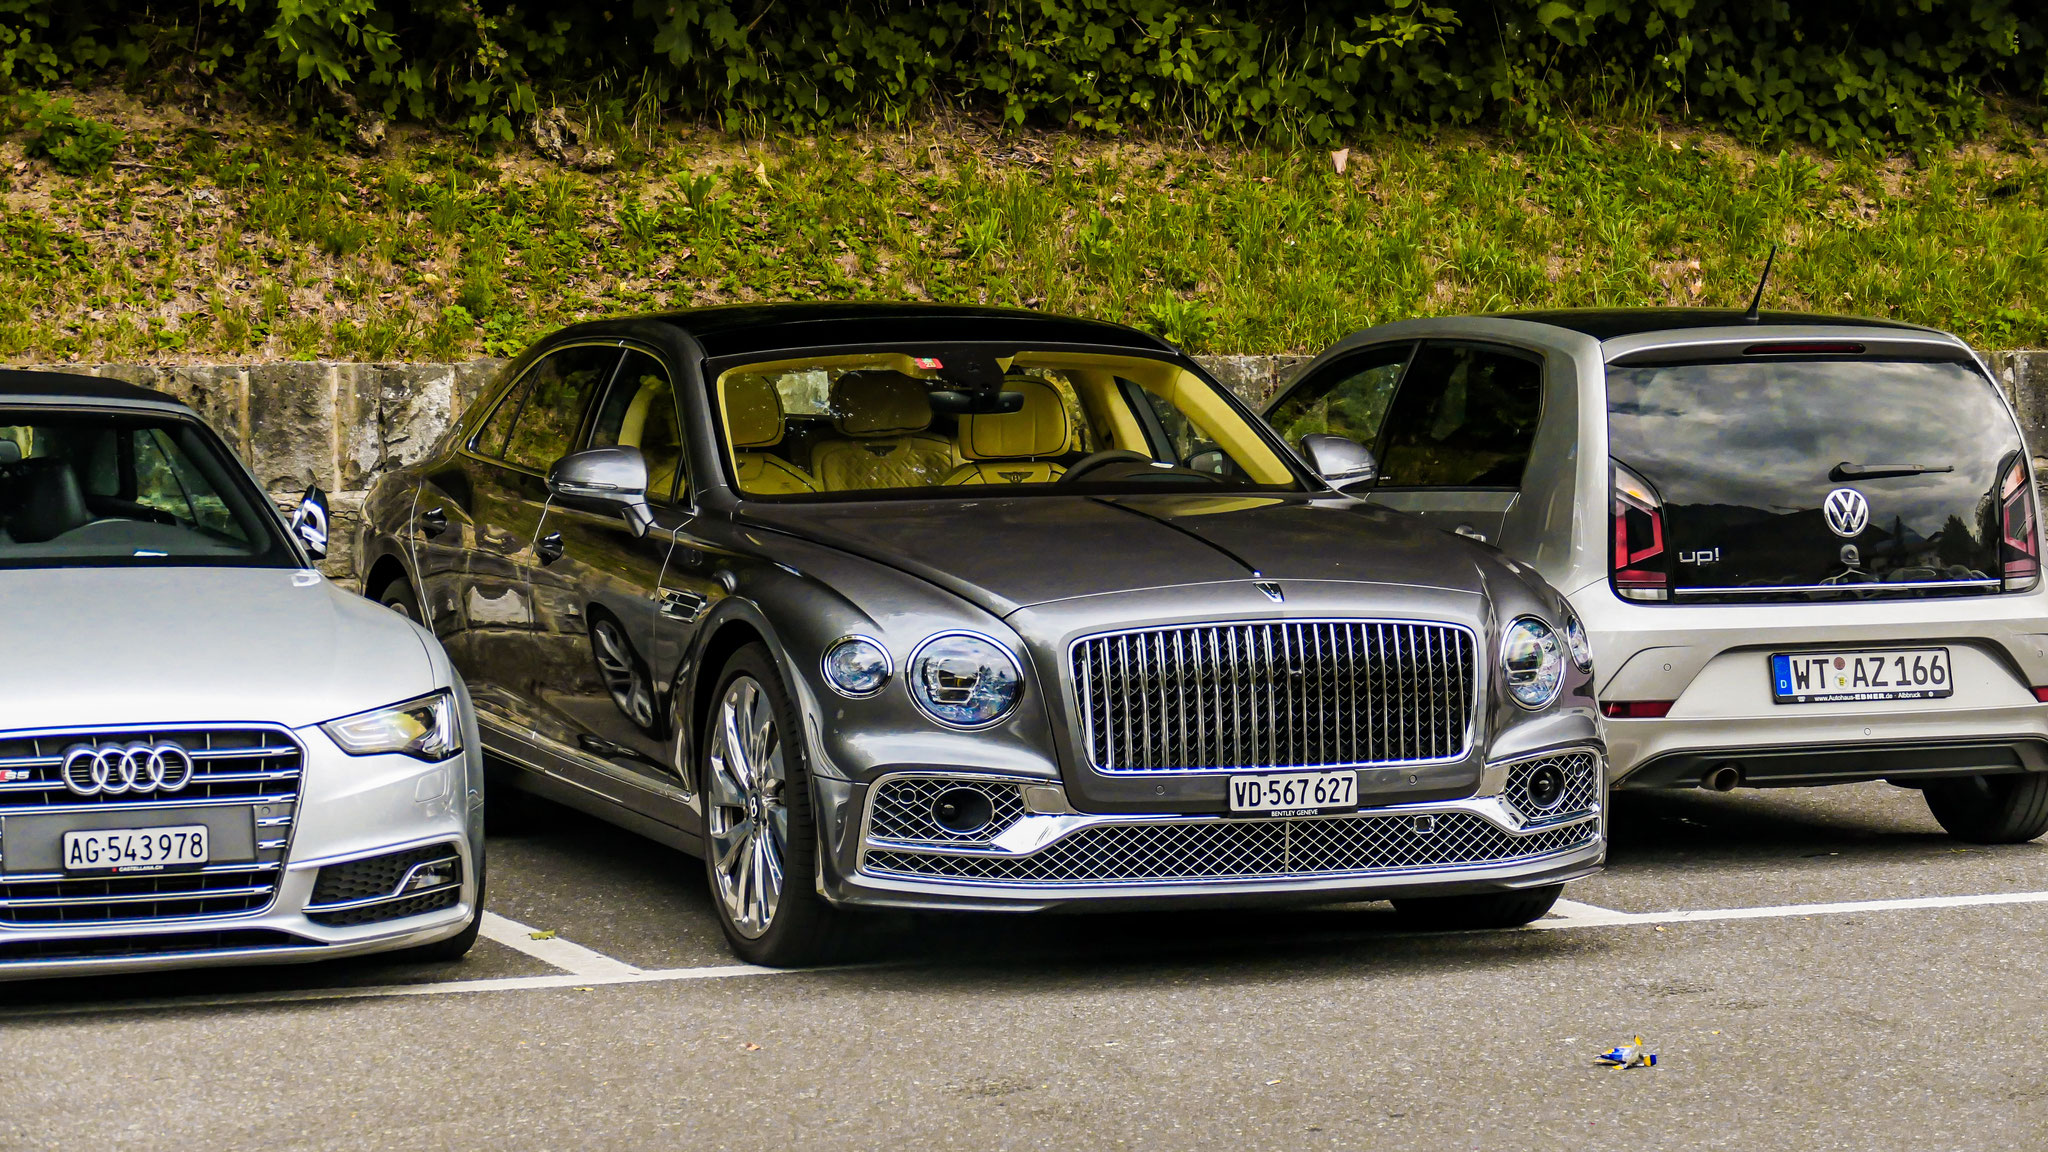 Bentley Flying Spur - VD-567627 (CH)